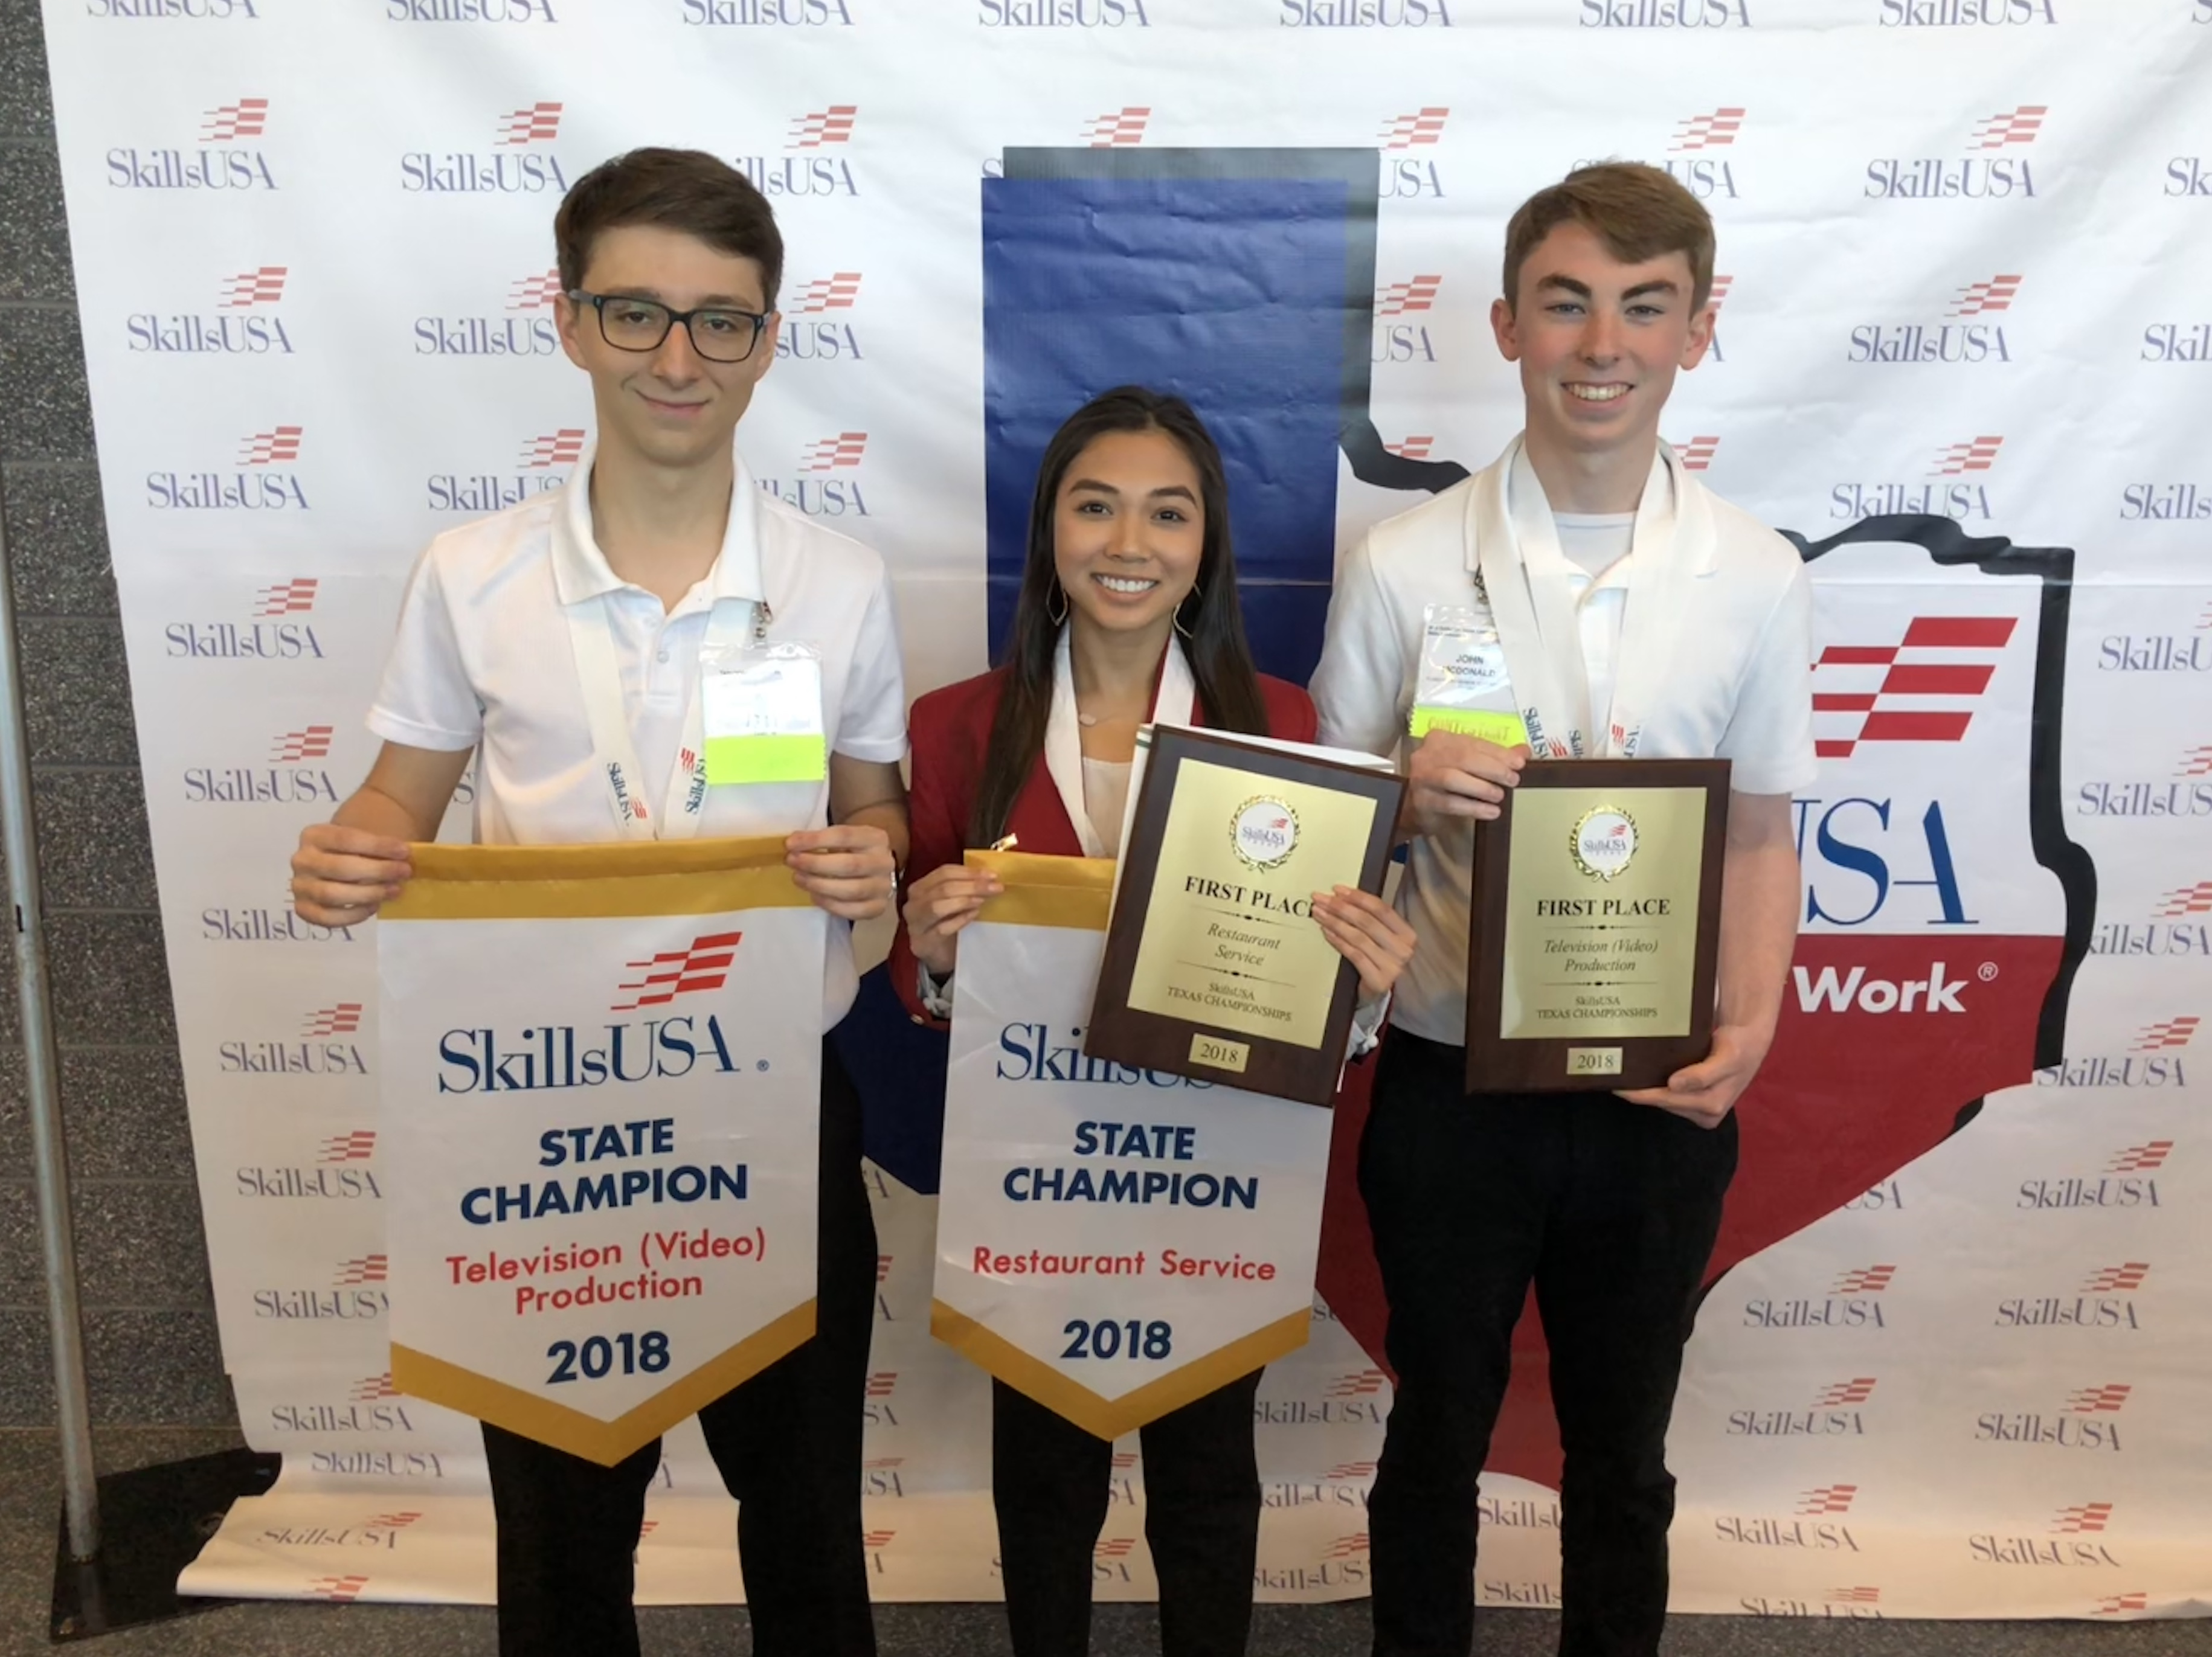 3 students qualifiers for national competition